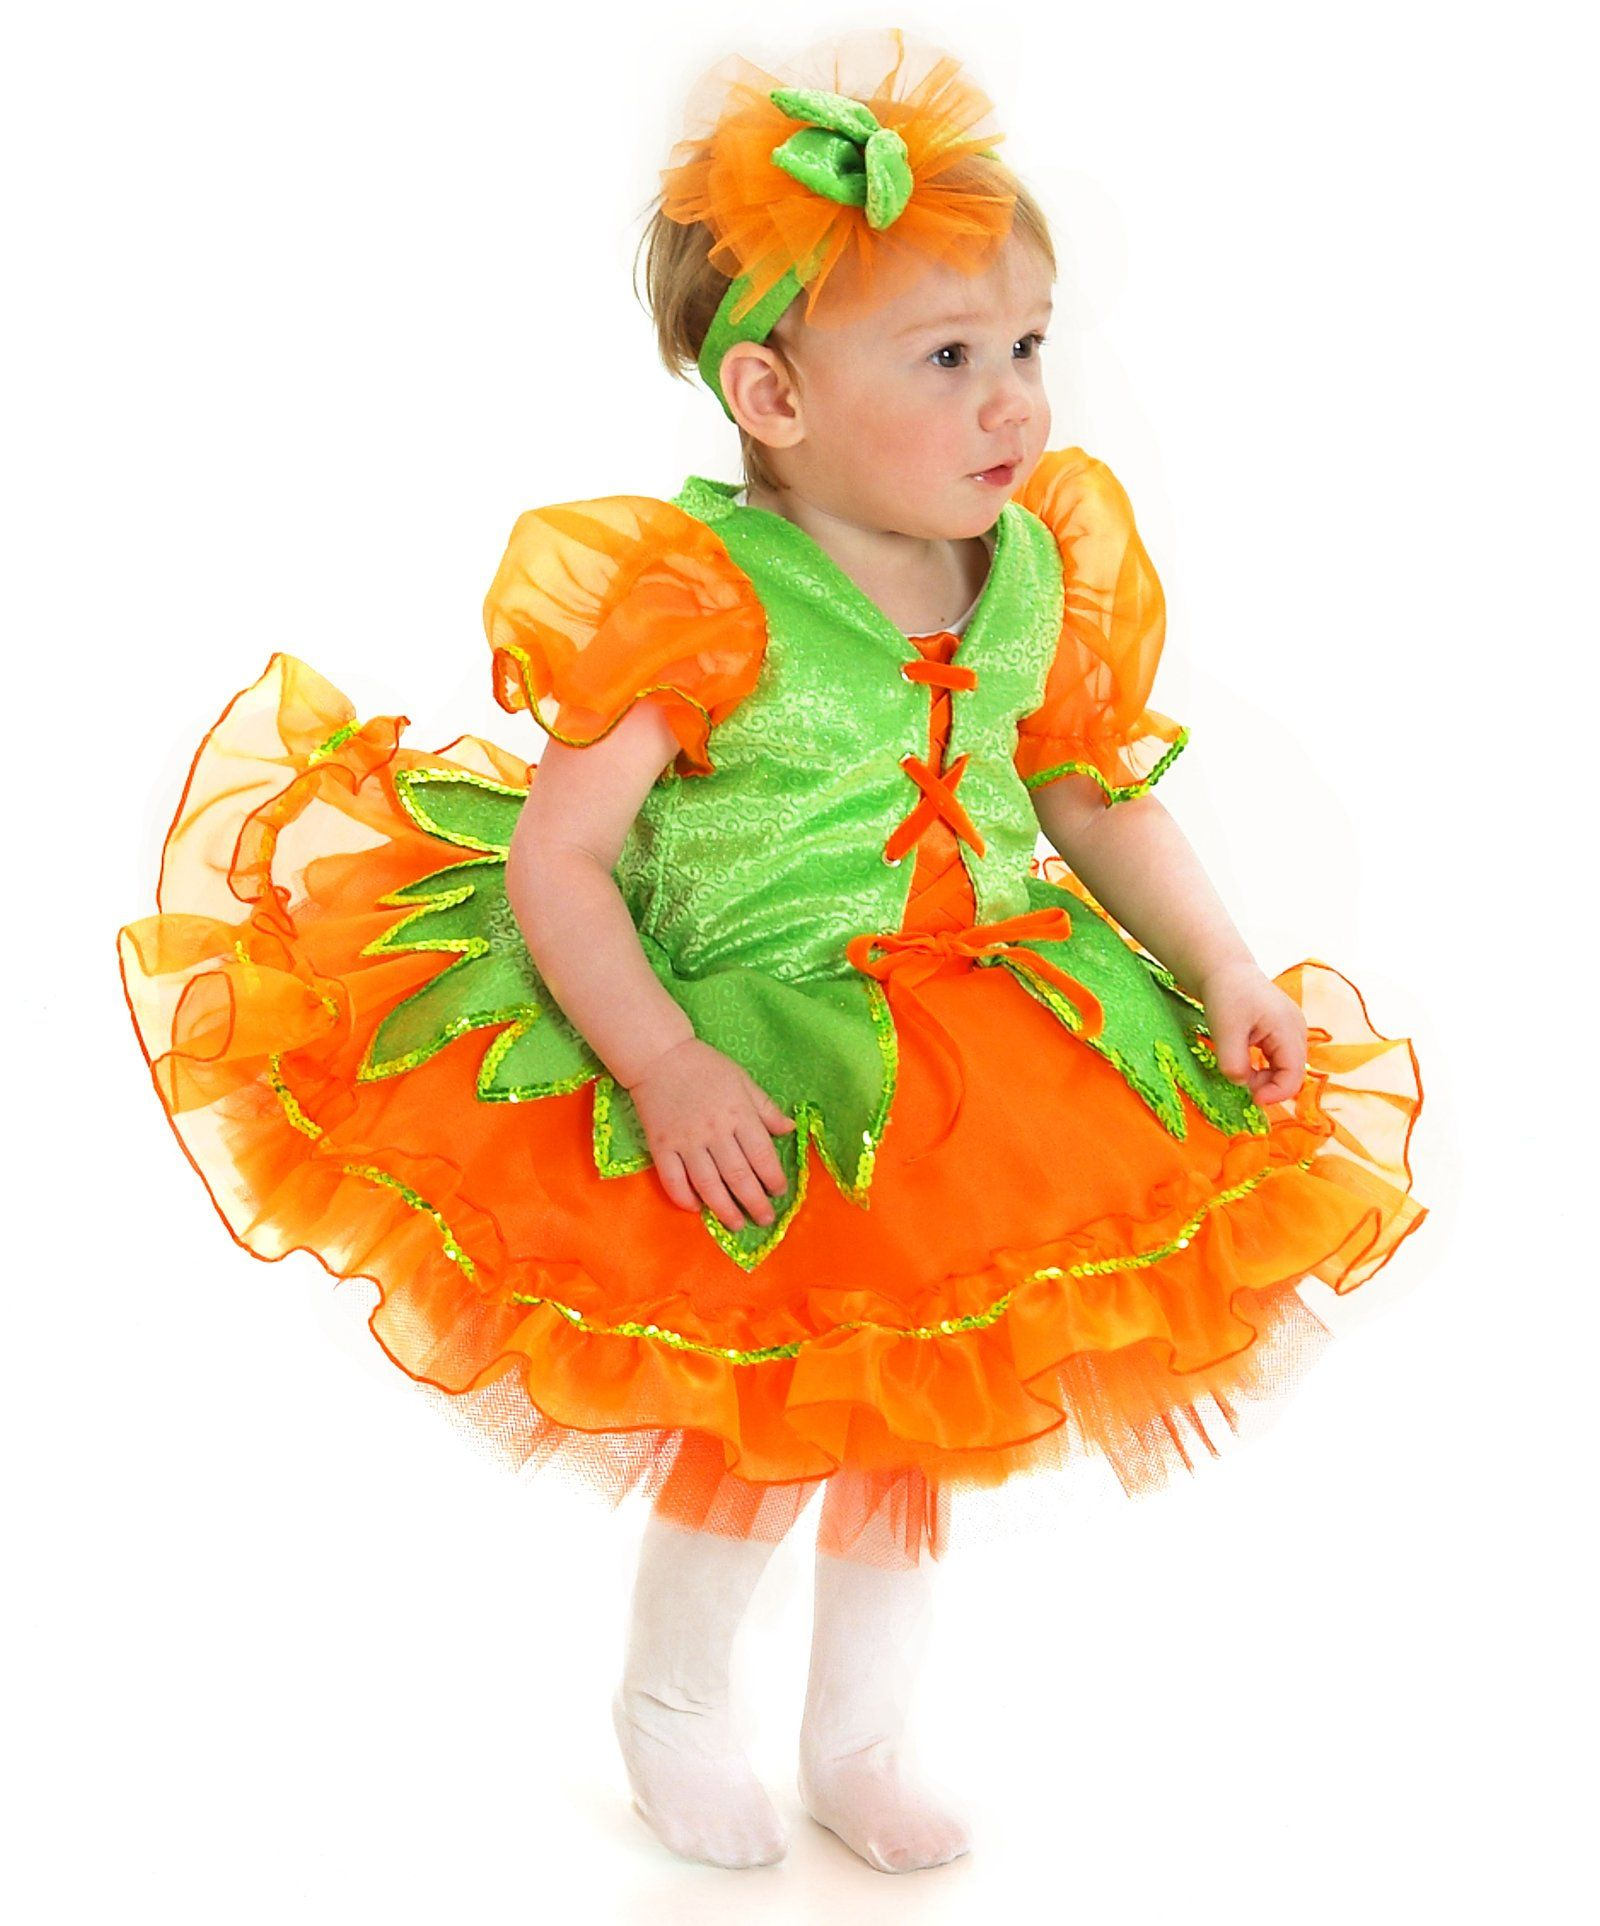 Happy halloween · Pumpkin Princess Infant / Toddler Costume ...  sc 1 st  Pinterest & Pumpkin Pie Toddler Costume | Infant girl halloween costumes ...